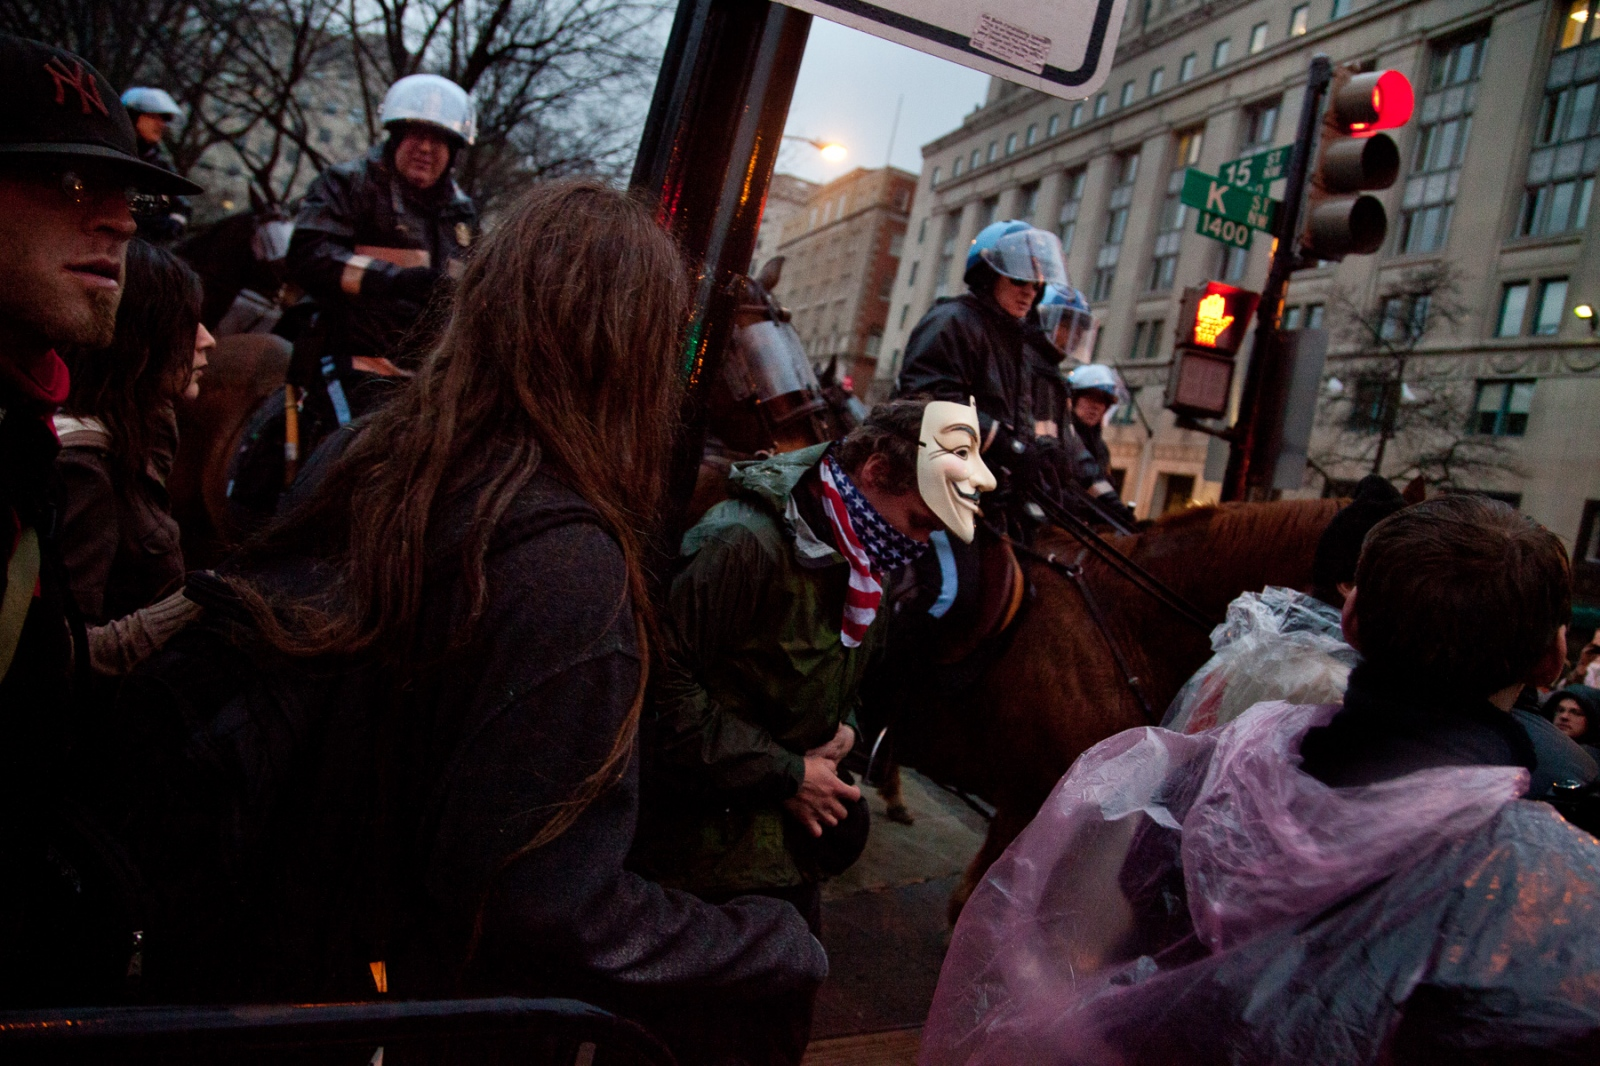 U.S. Park Police on horseback force out the last protestors in McPherson Square.